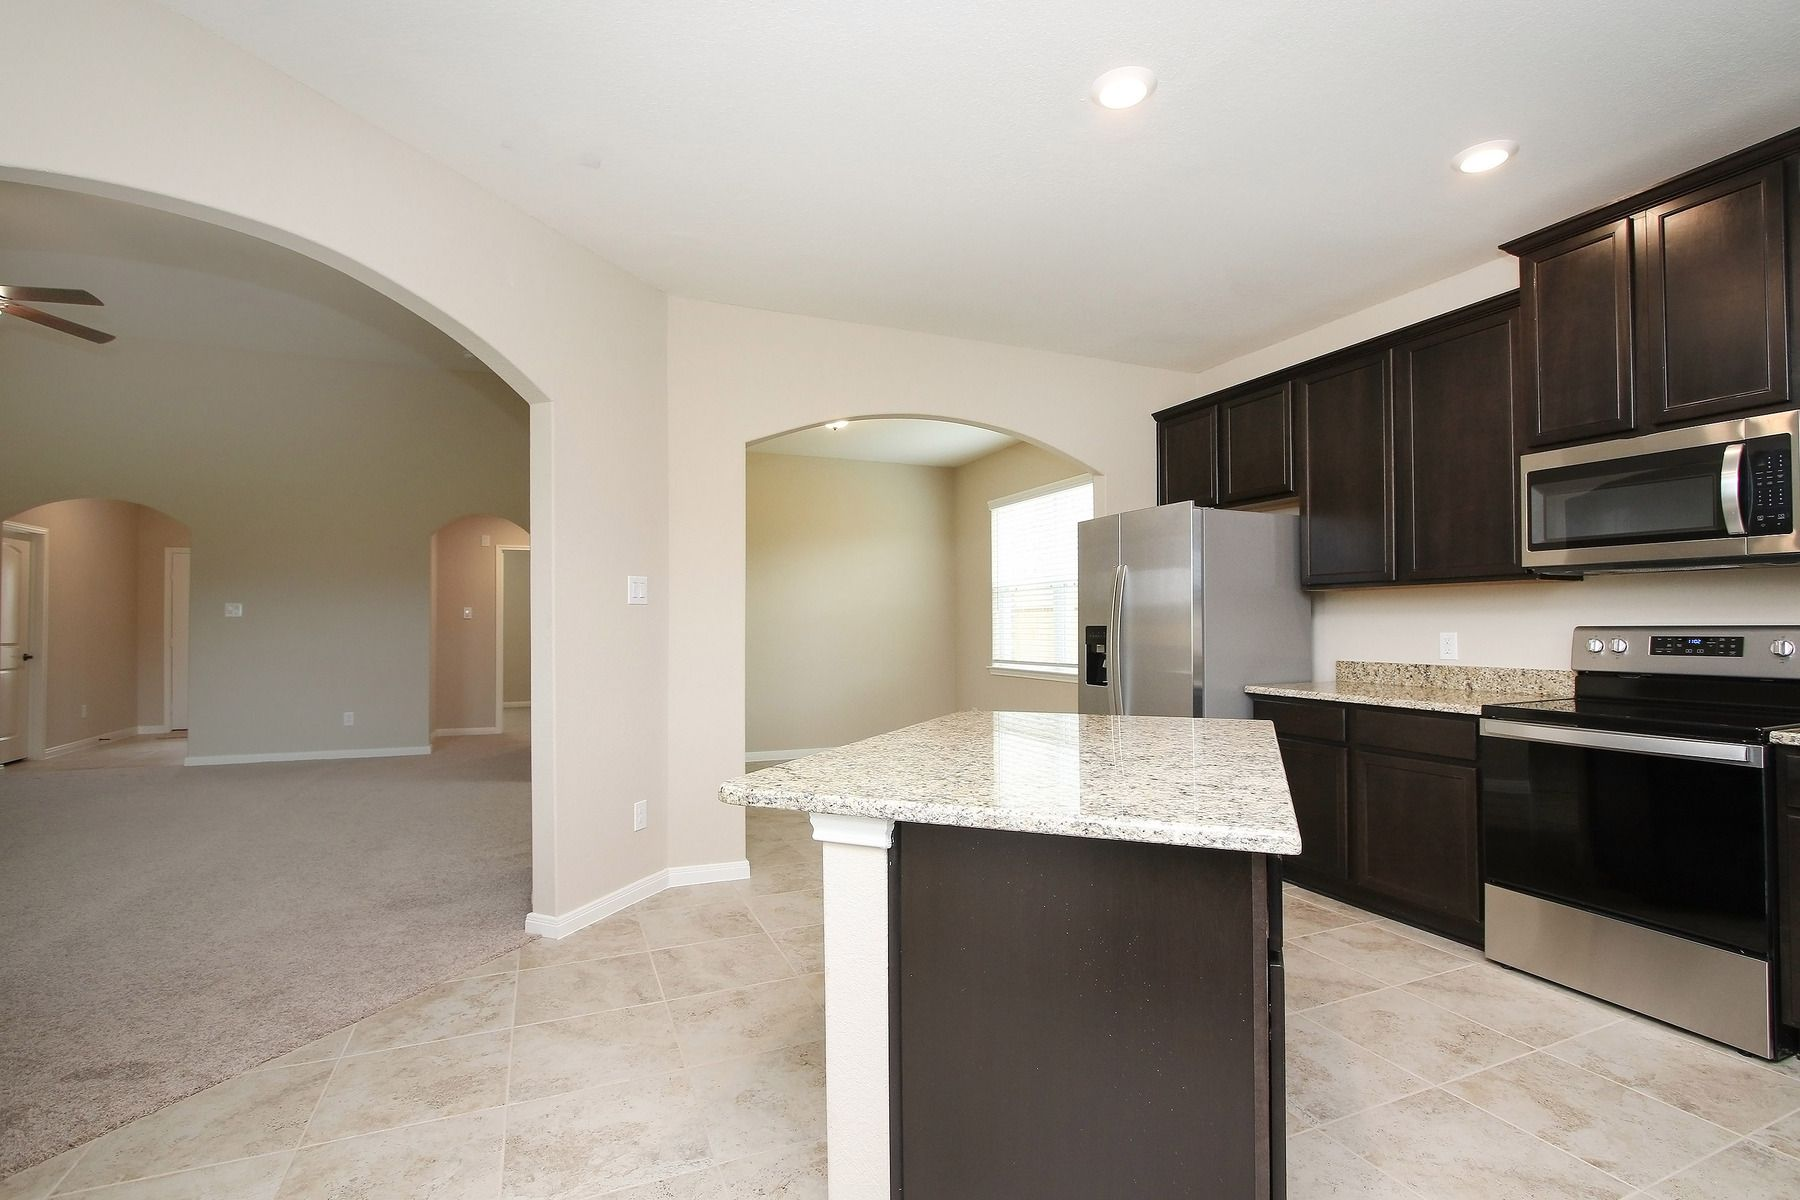 Kitchen featured in the Hendrie  By LGI Homes in Houston, TX